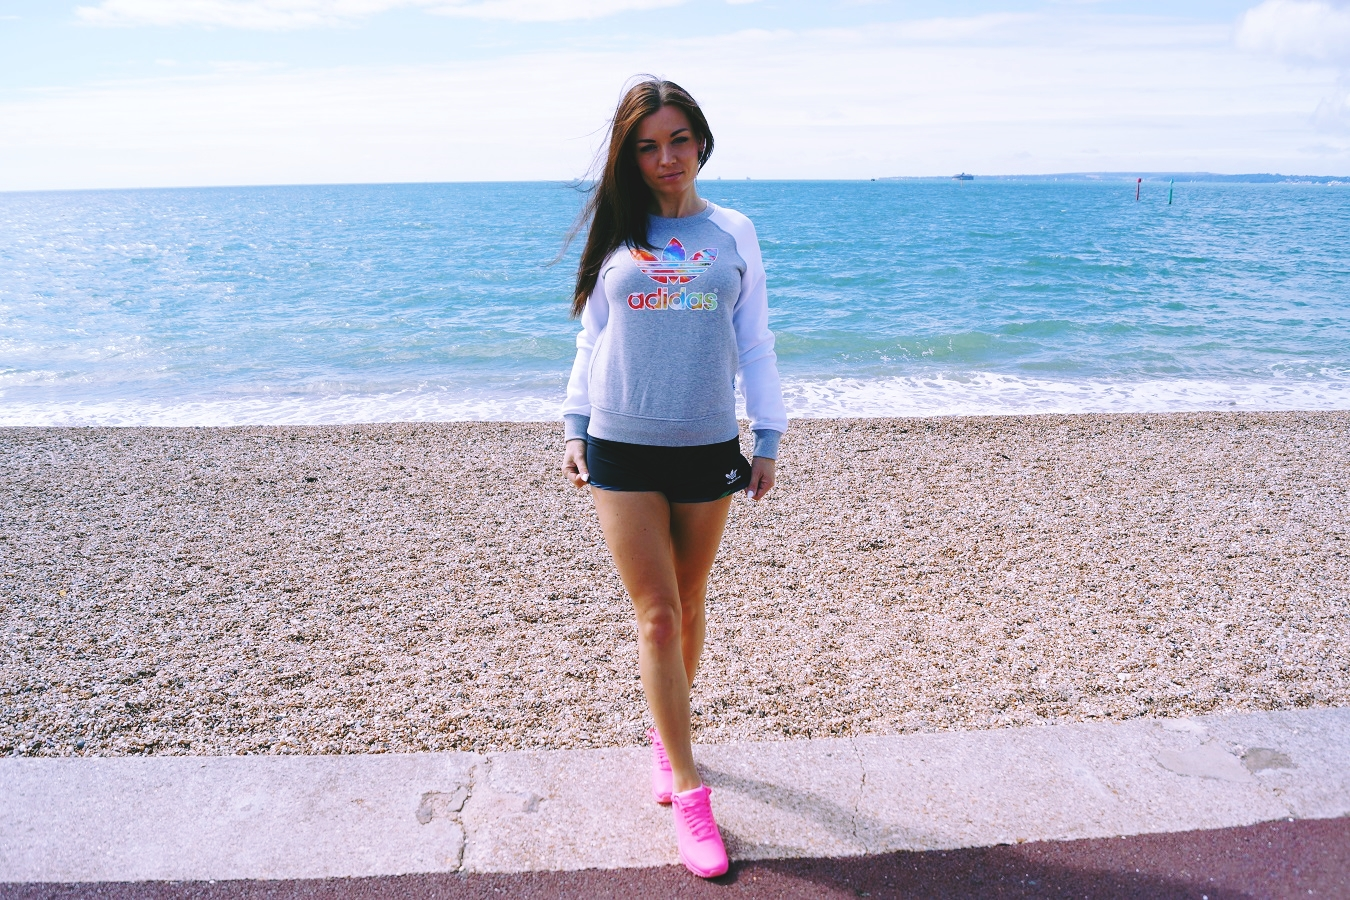 belucce fitness blog london beach adidas pink airmax jo-jo effect